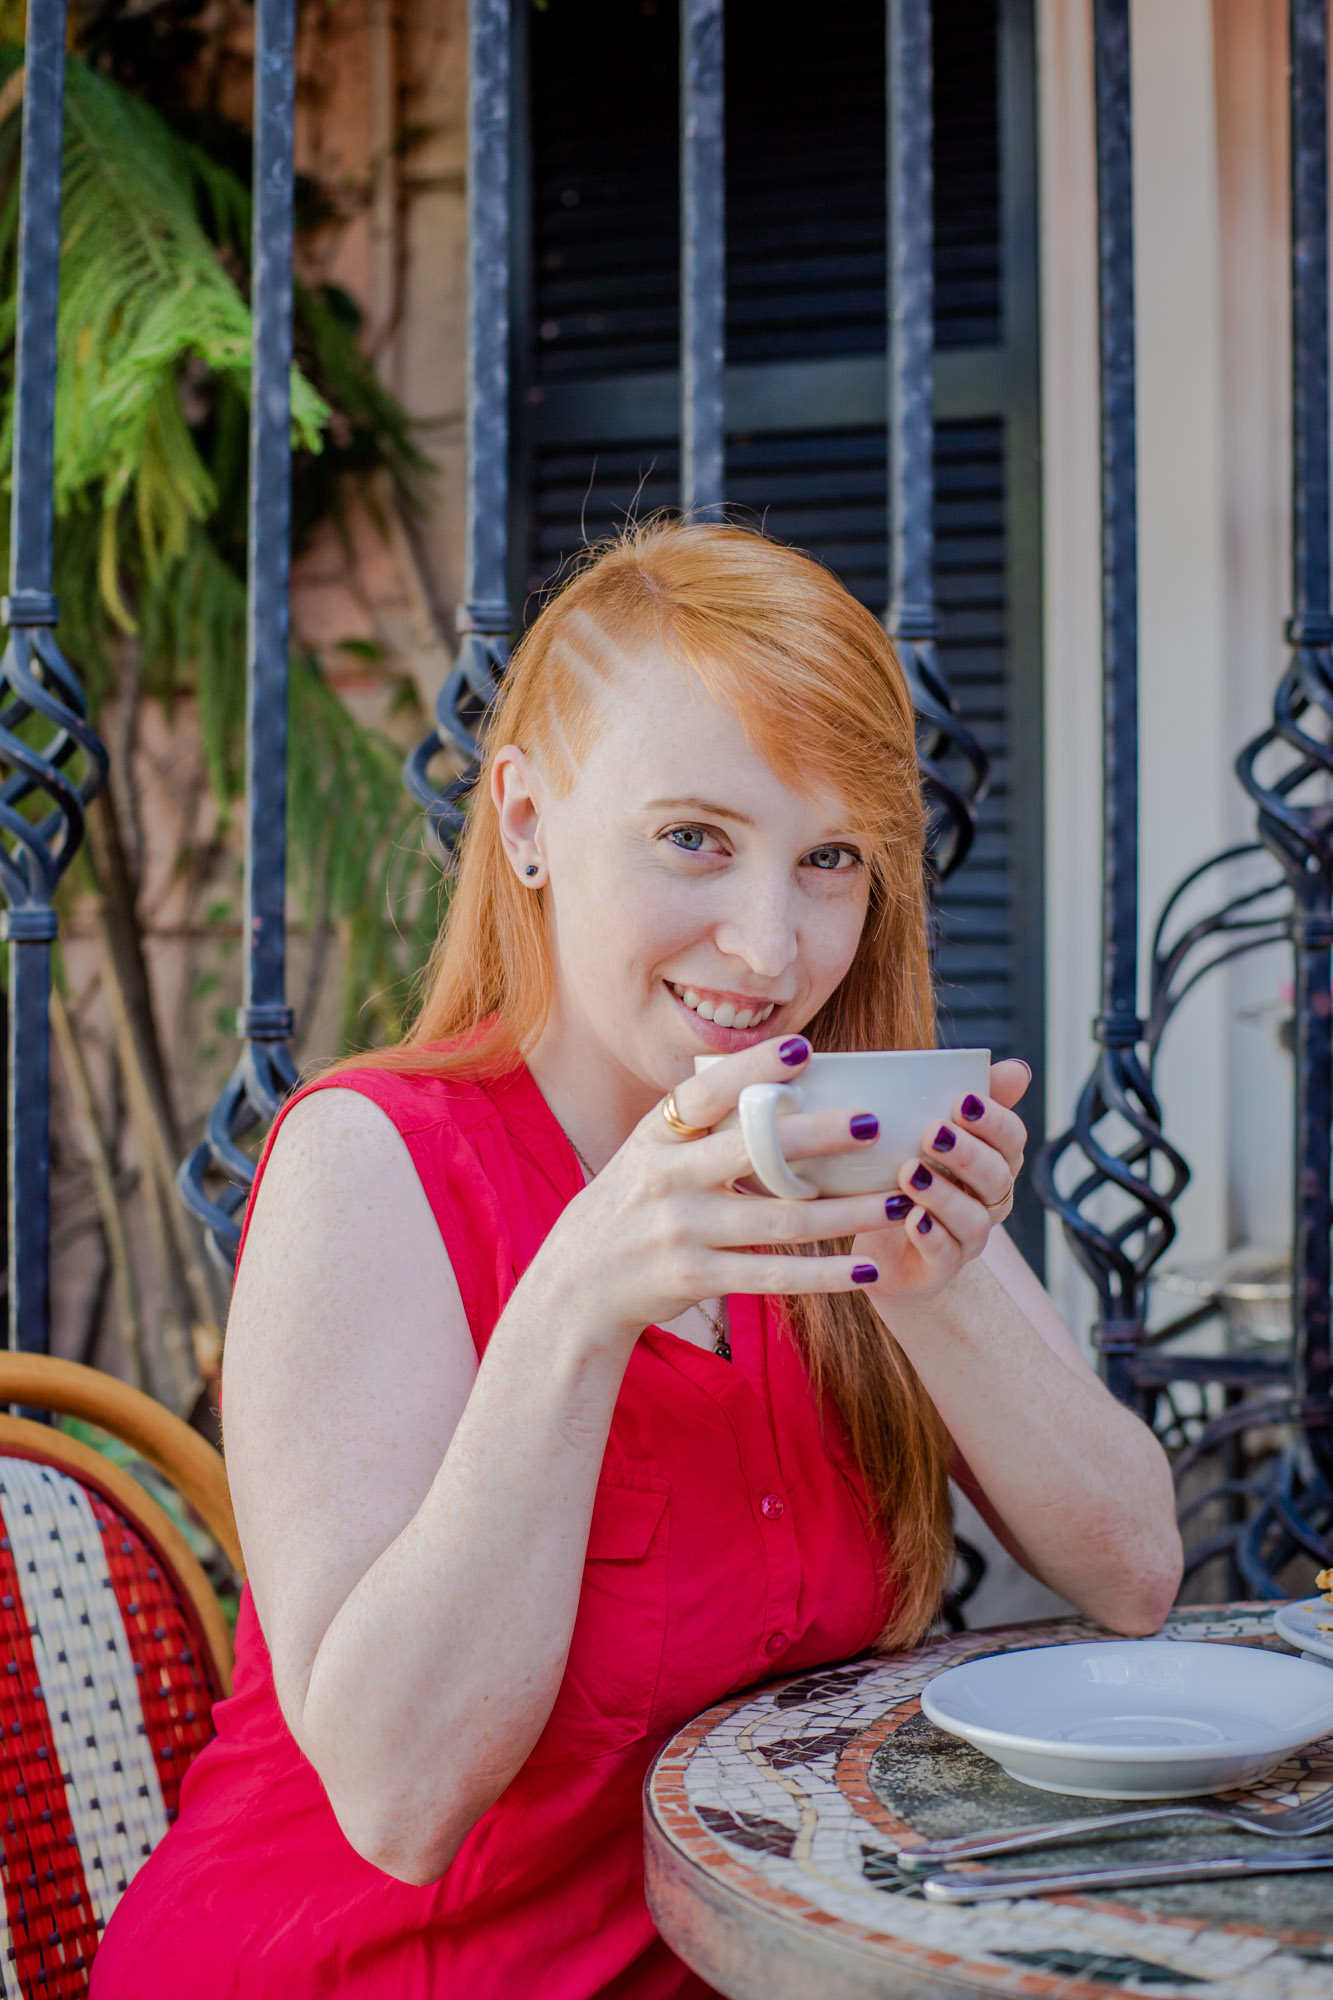 The Love Look - Online dating photography